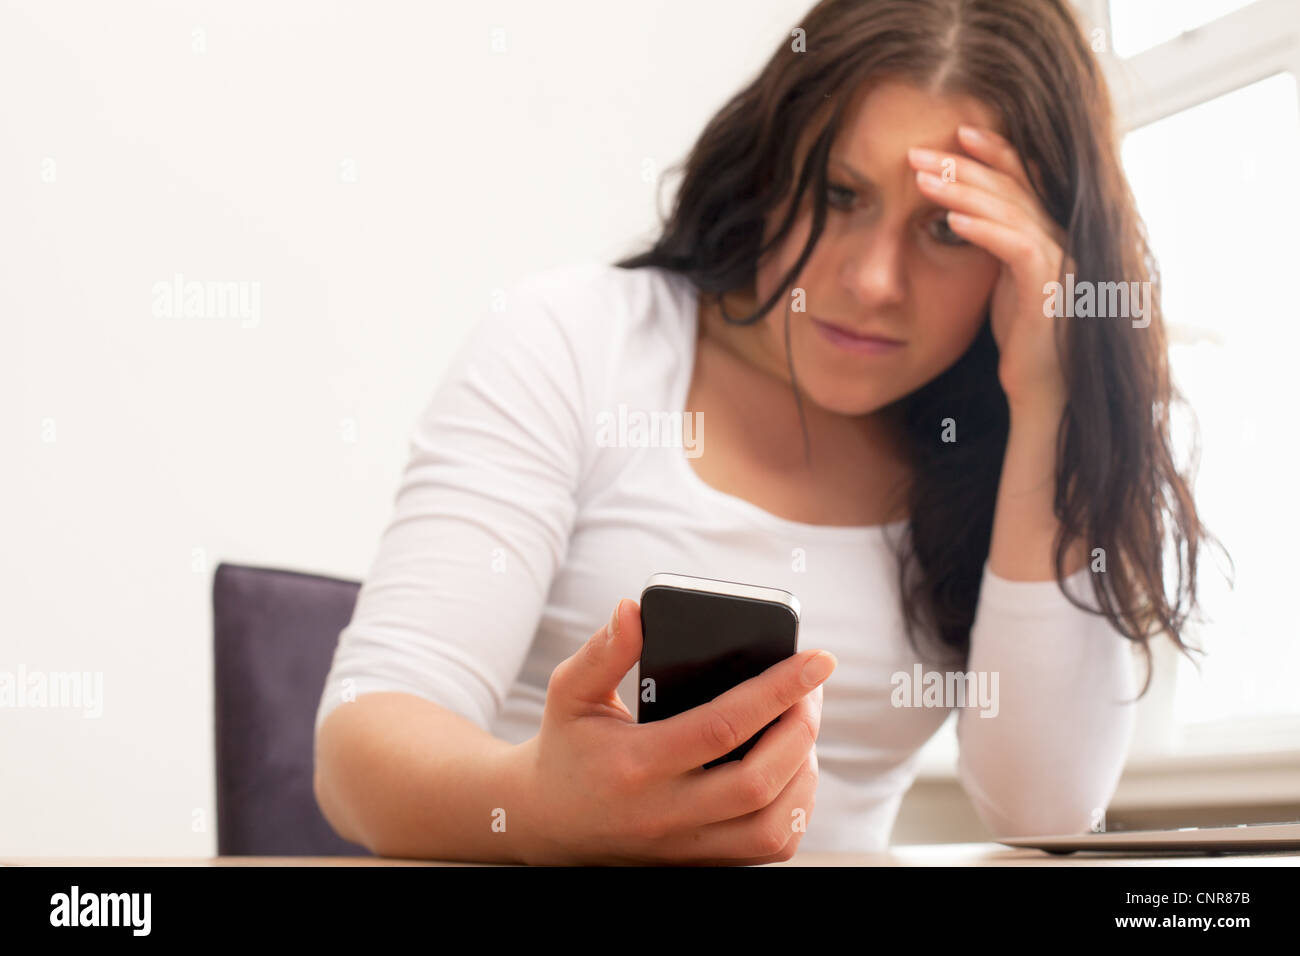 Portrait of an upset woman reading a text message on her phone - Stock Image